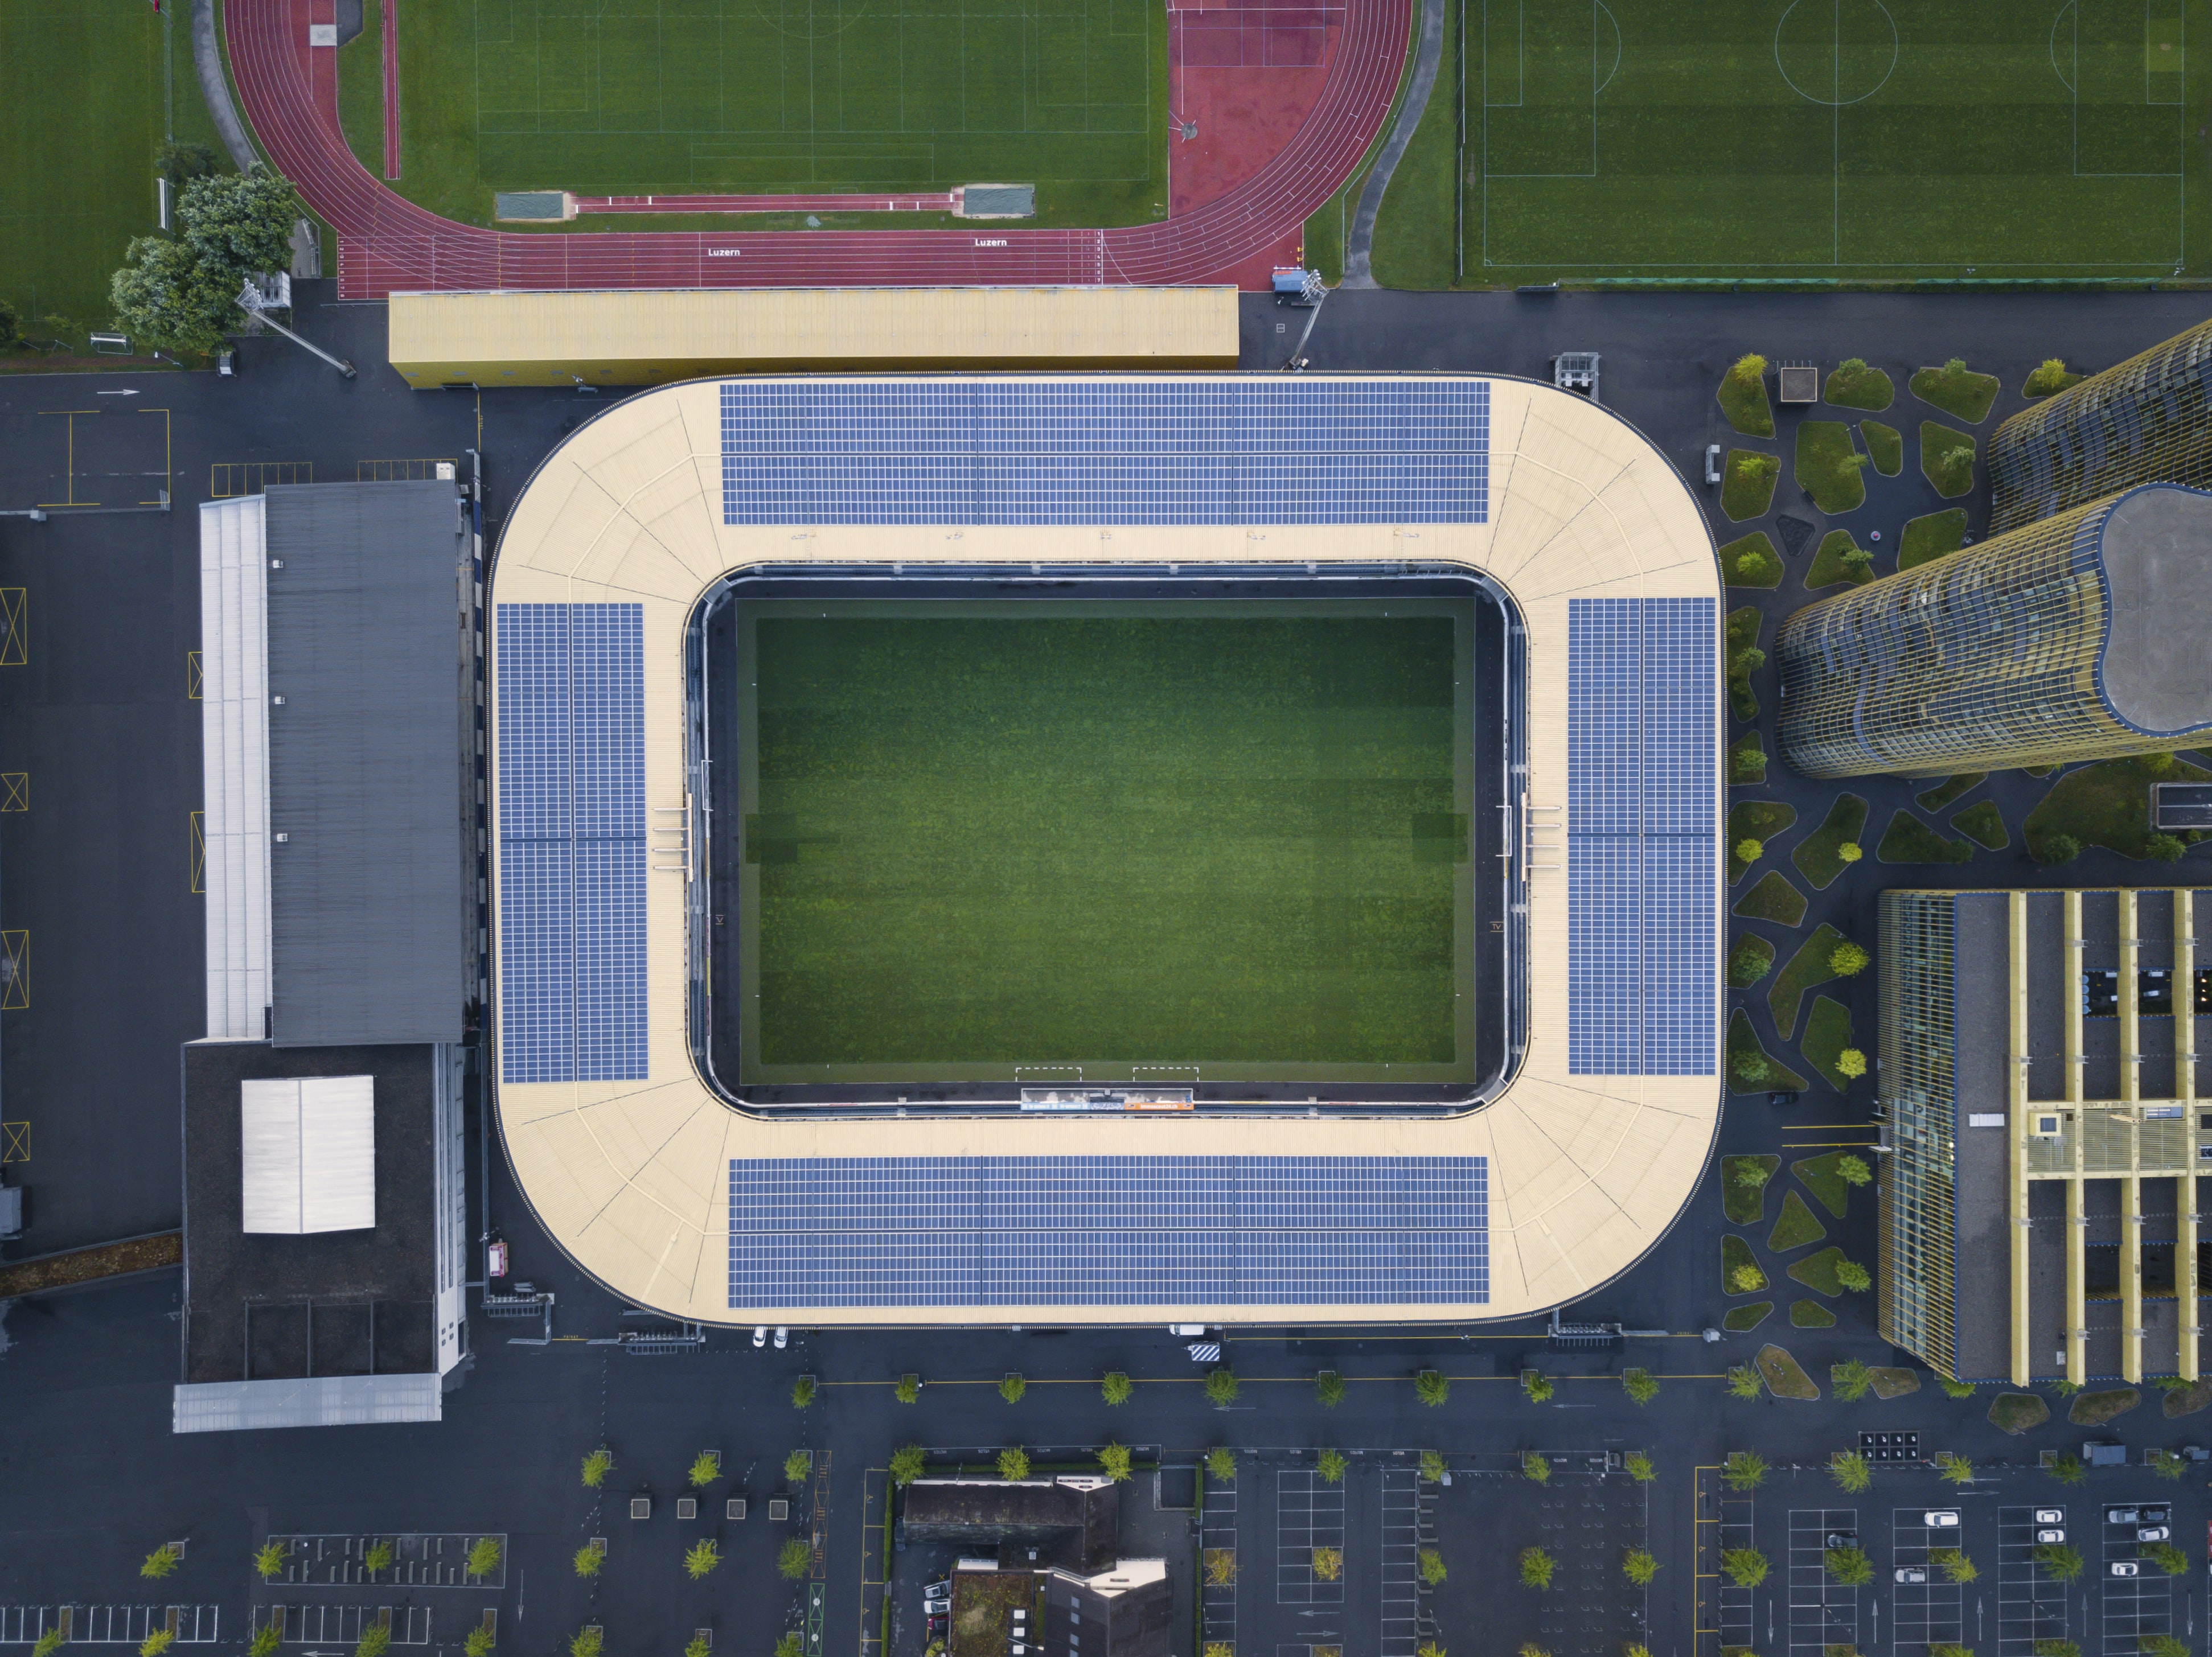 areal view of stadium